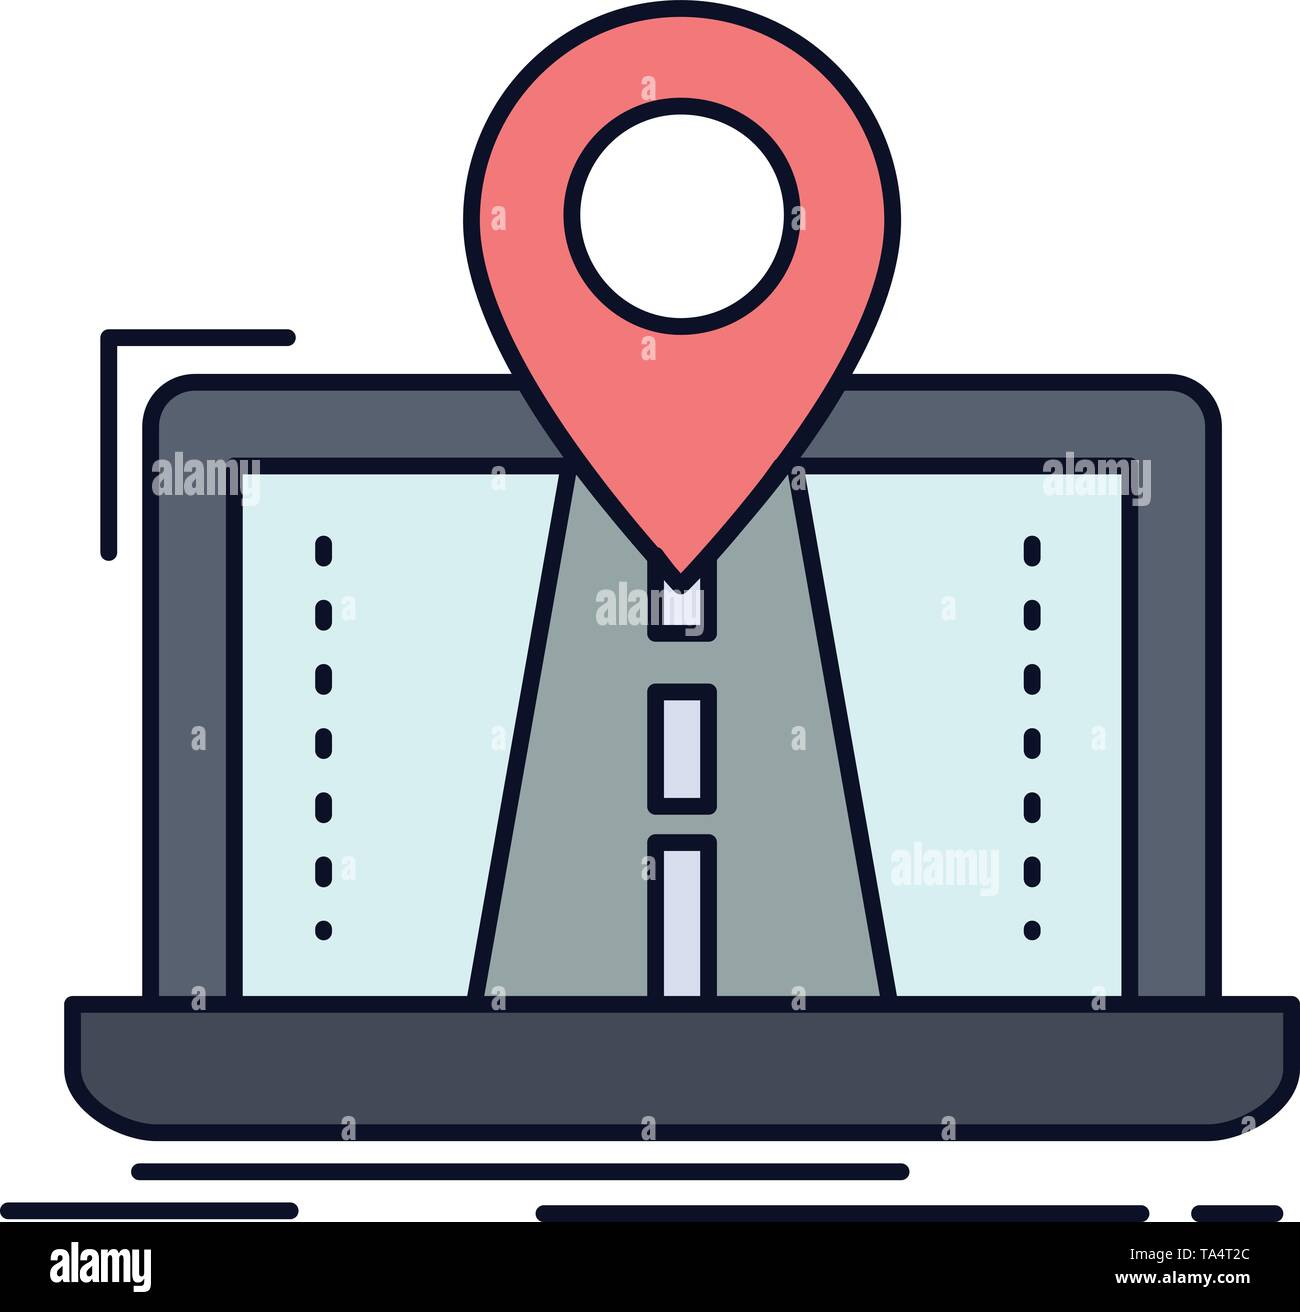 Navigation, Map, System, GPS, Route Flat Color Icon Vector - Stock Vector